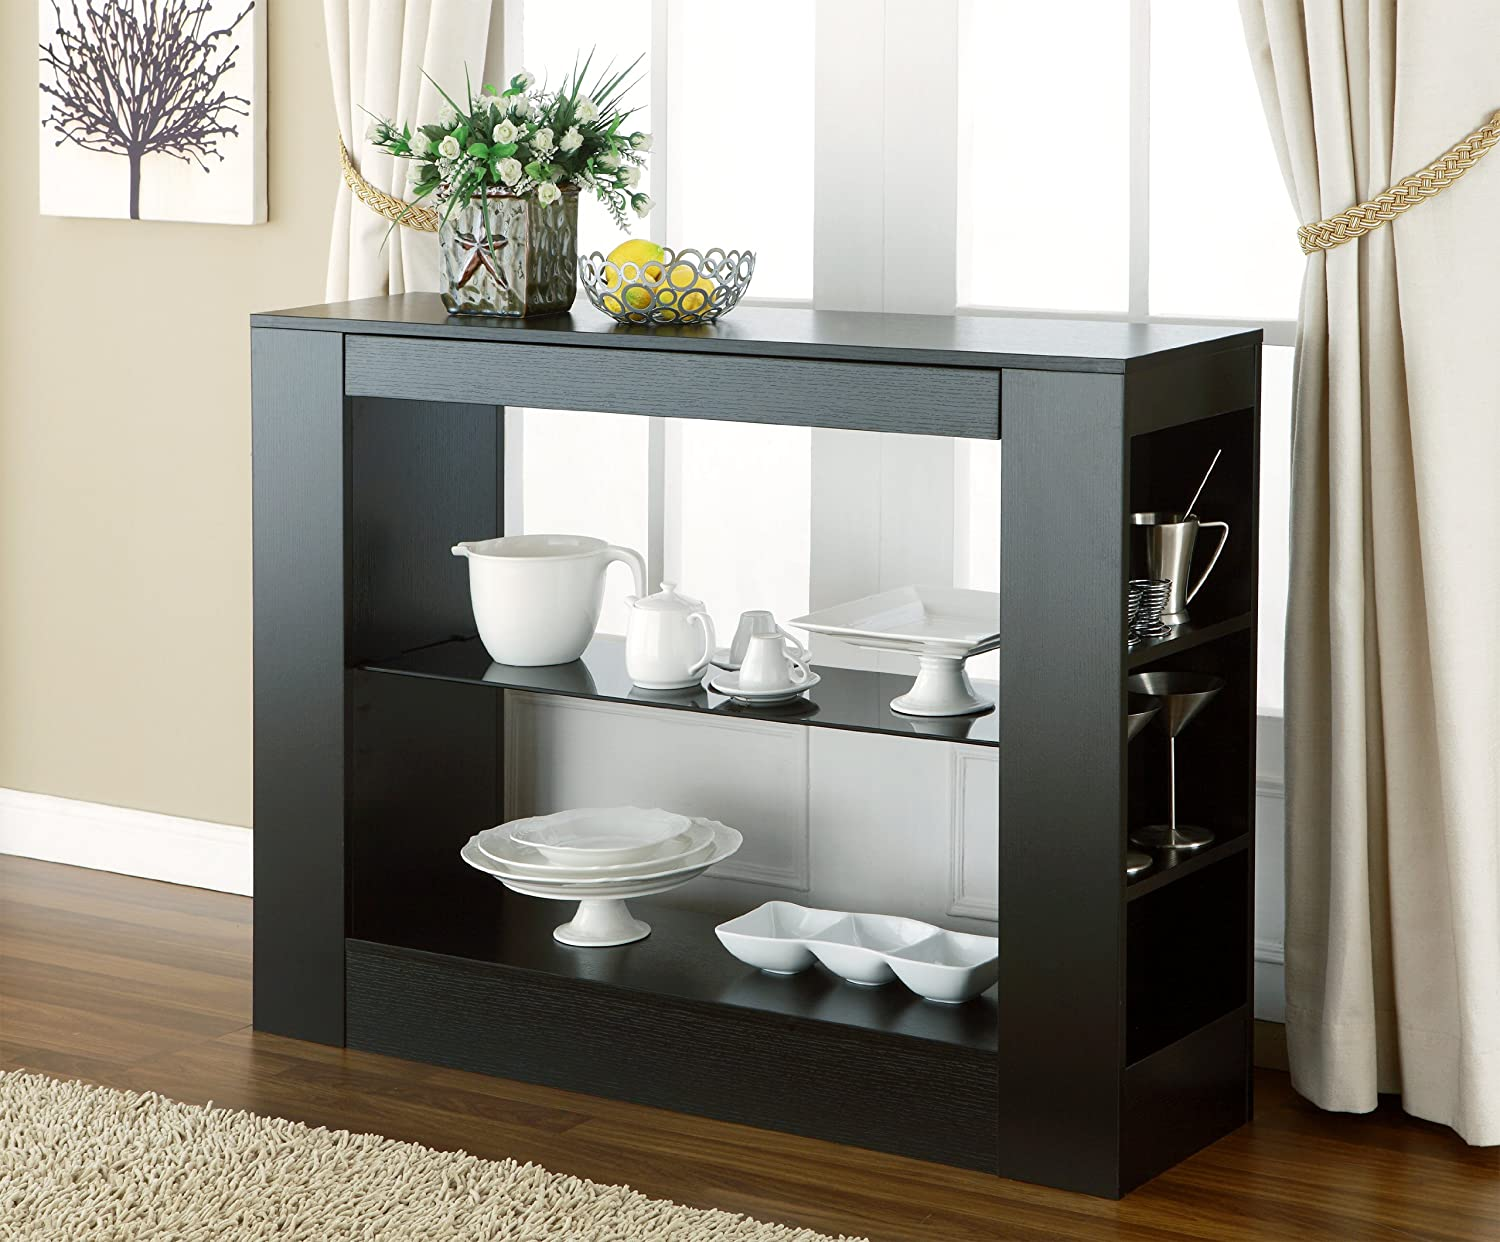 Modern Console Tables With Storage - Amazon com iohomes somerset multi storage dining buffet console table black buffets sideboards